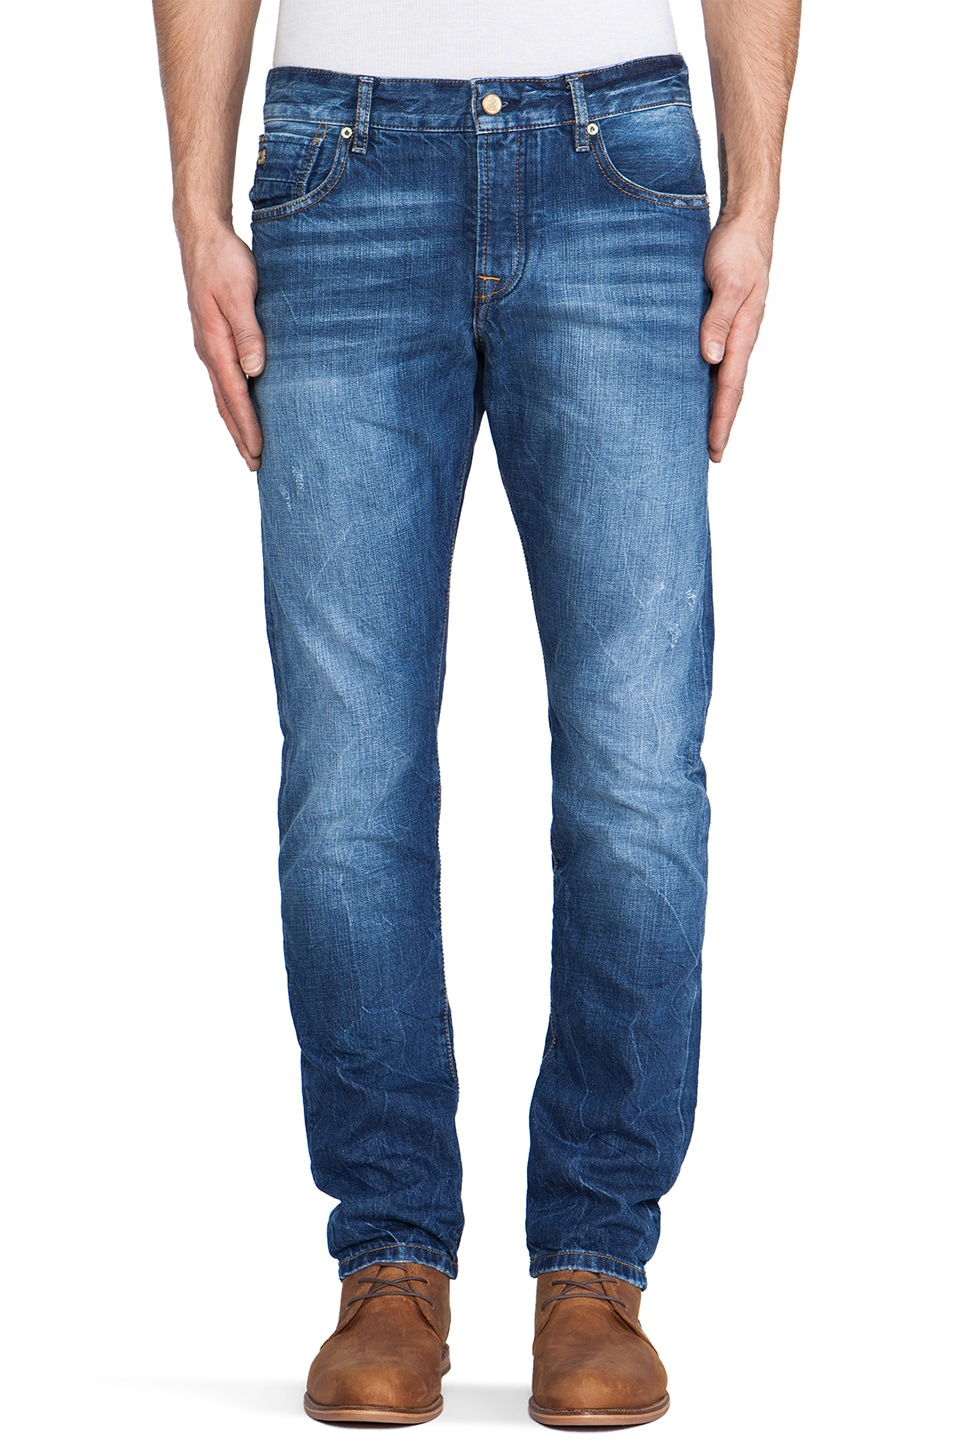 Scotch & Soda Ralston Slim in Absolute Blue